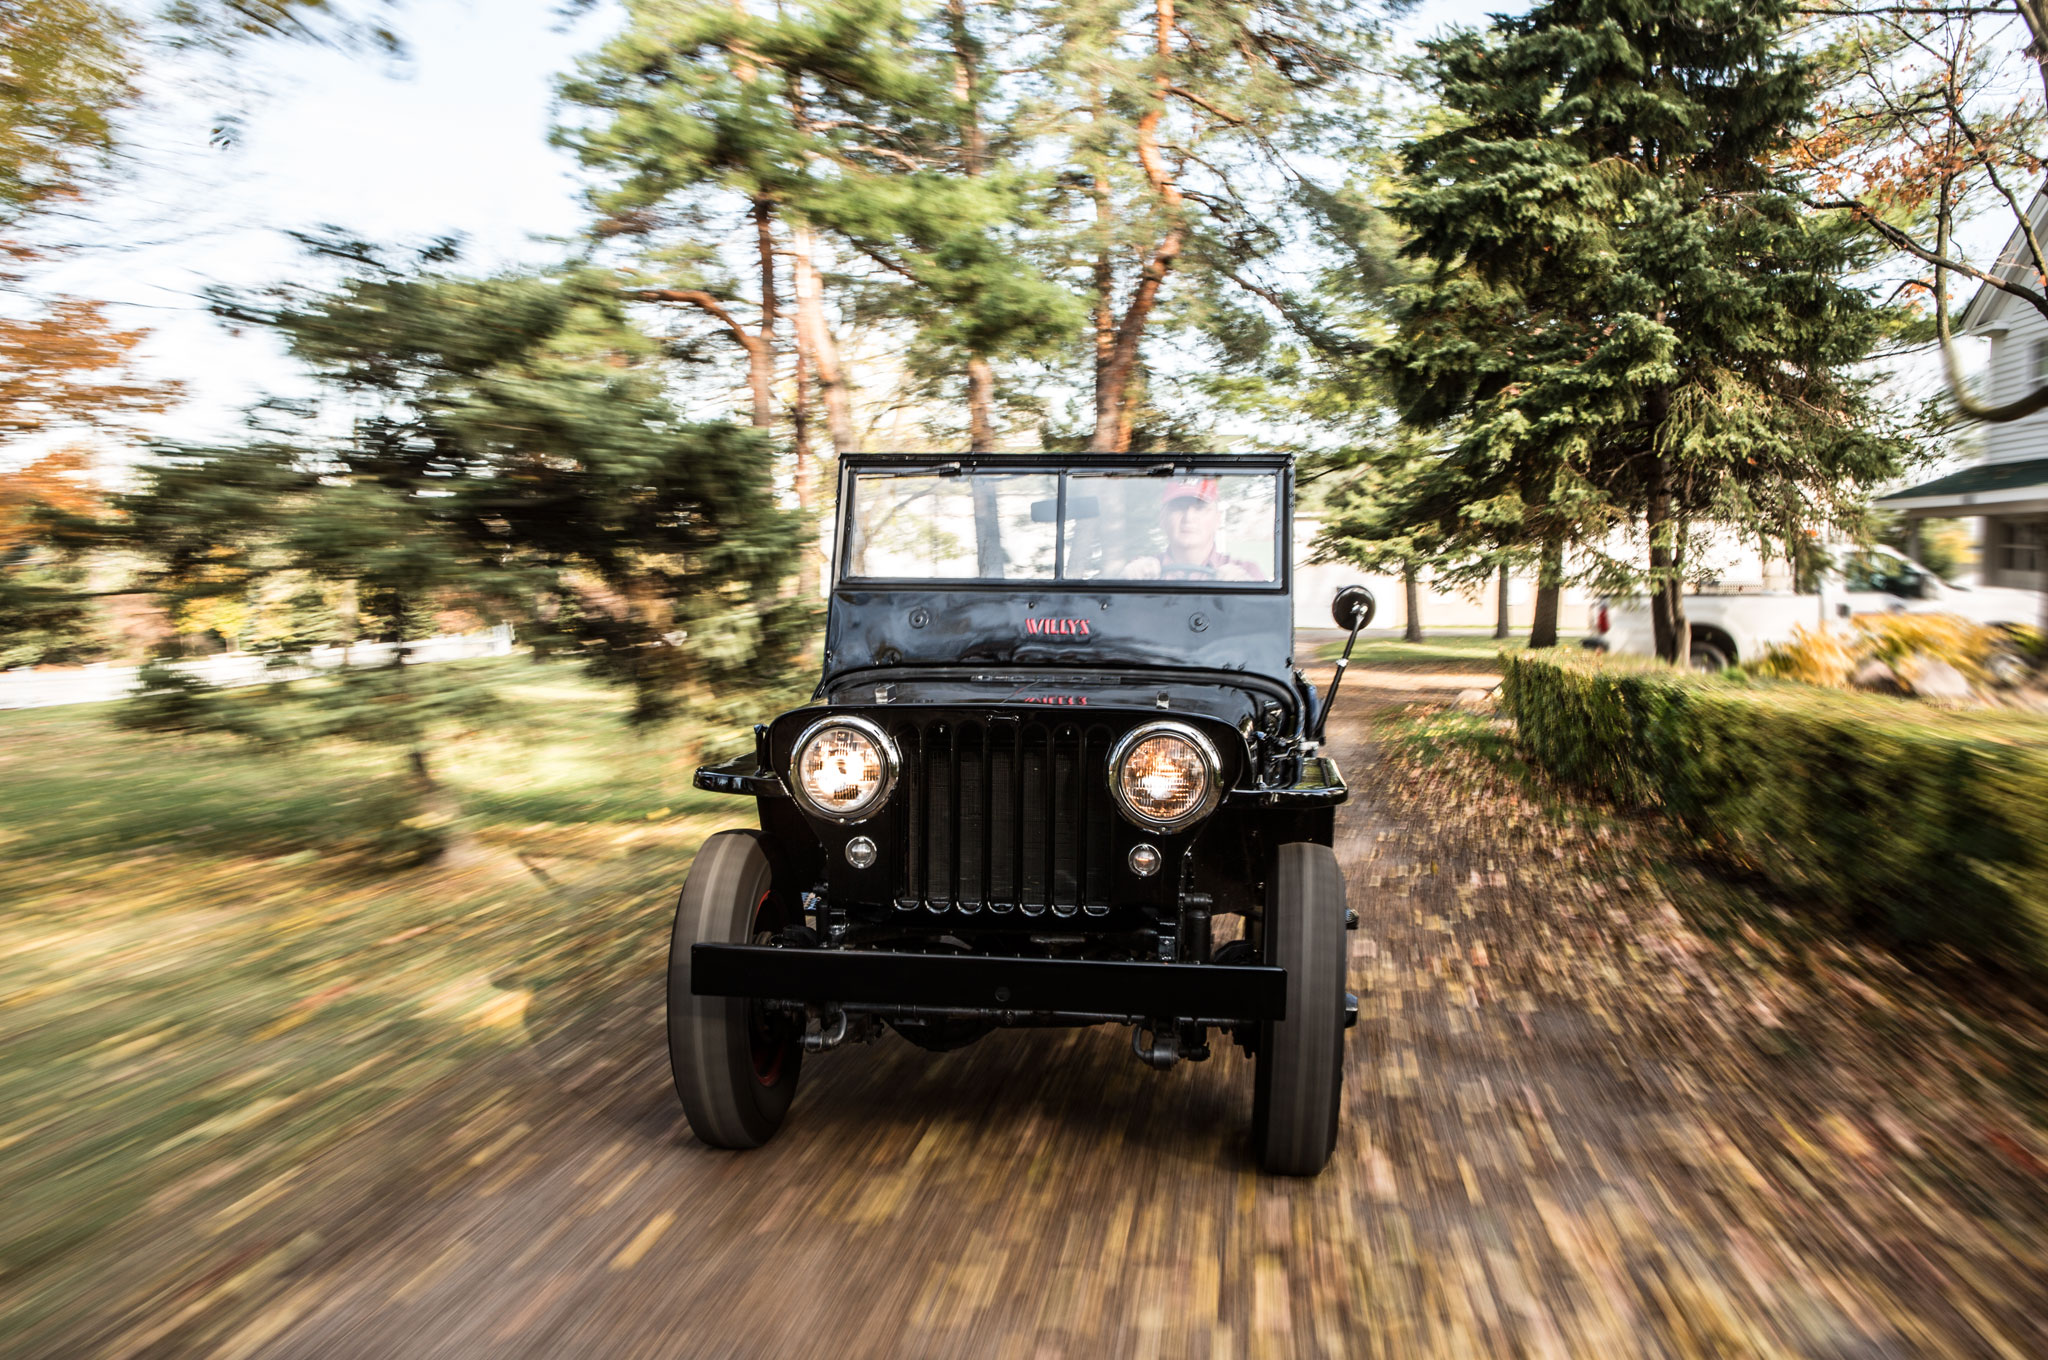 Collectible Classic 1945 1953 Willys Jeep Cj 2a 3a Automobile 1950 For Sale Predictably